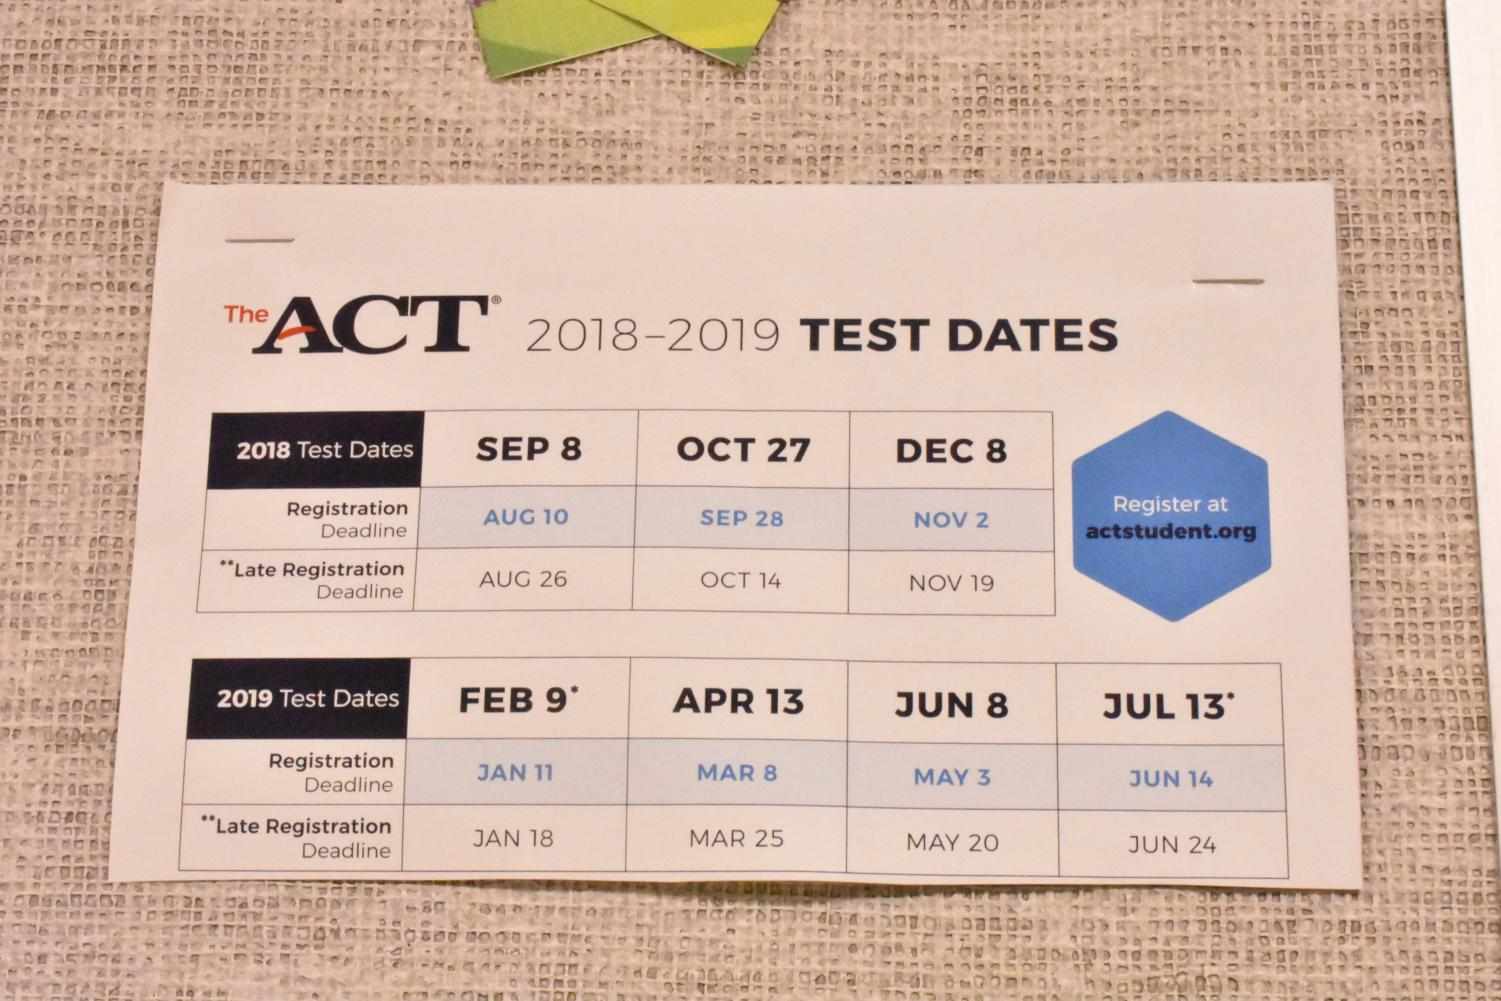 Dates of the ACT for 2018-2019